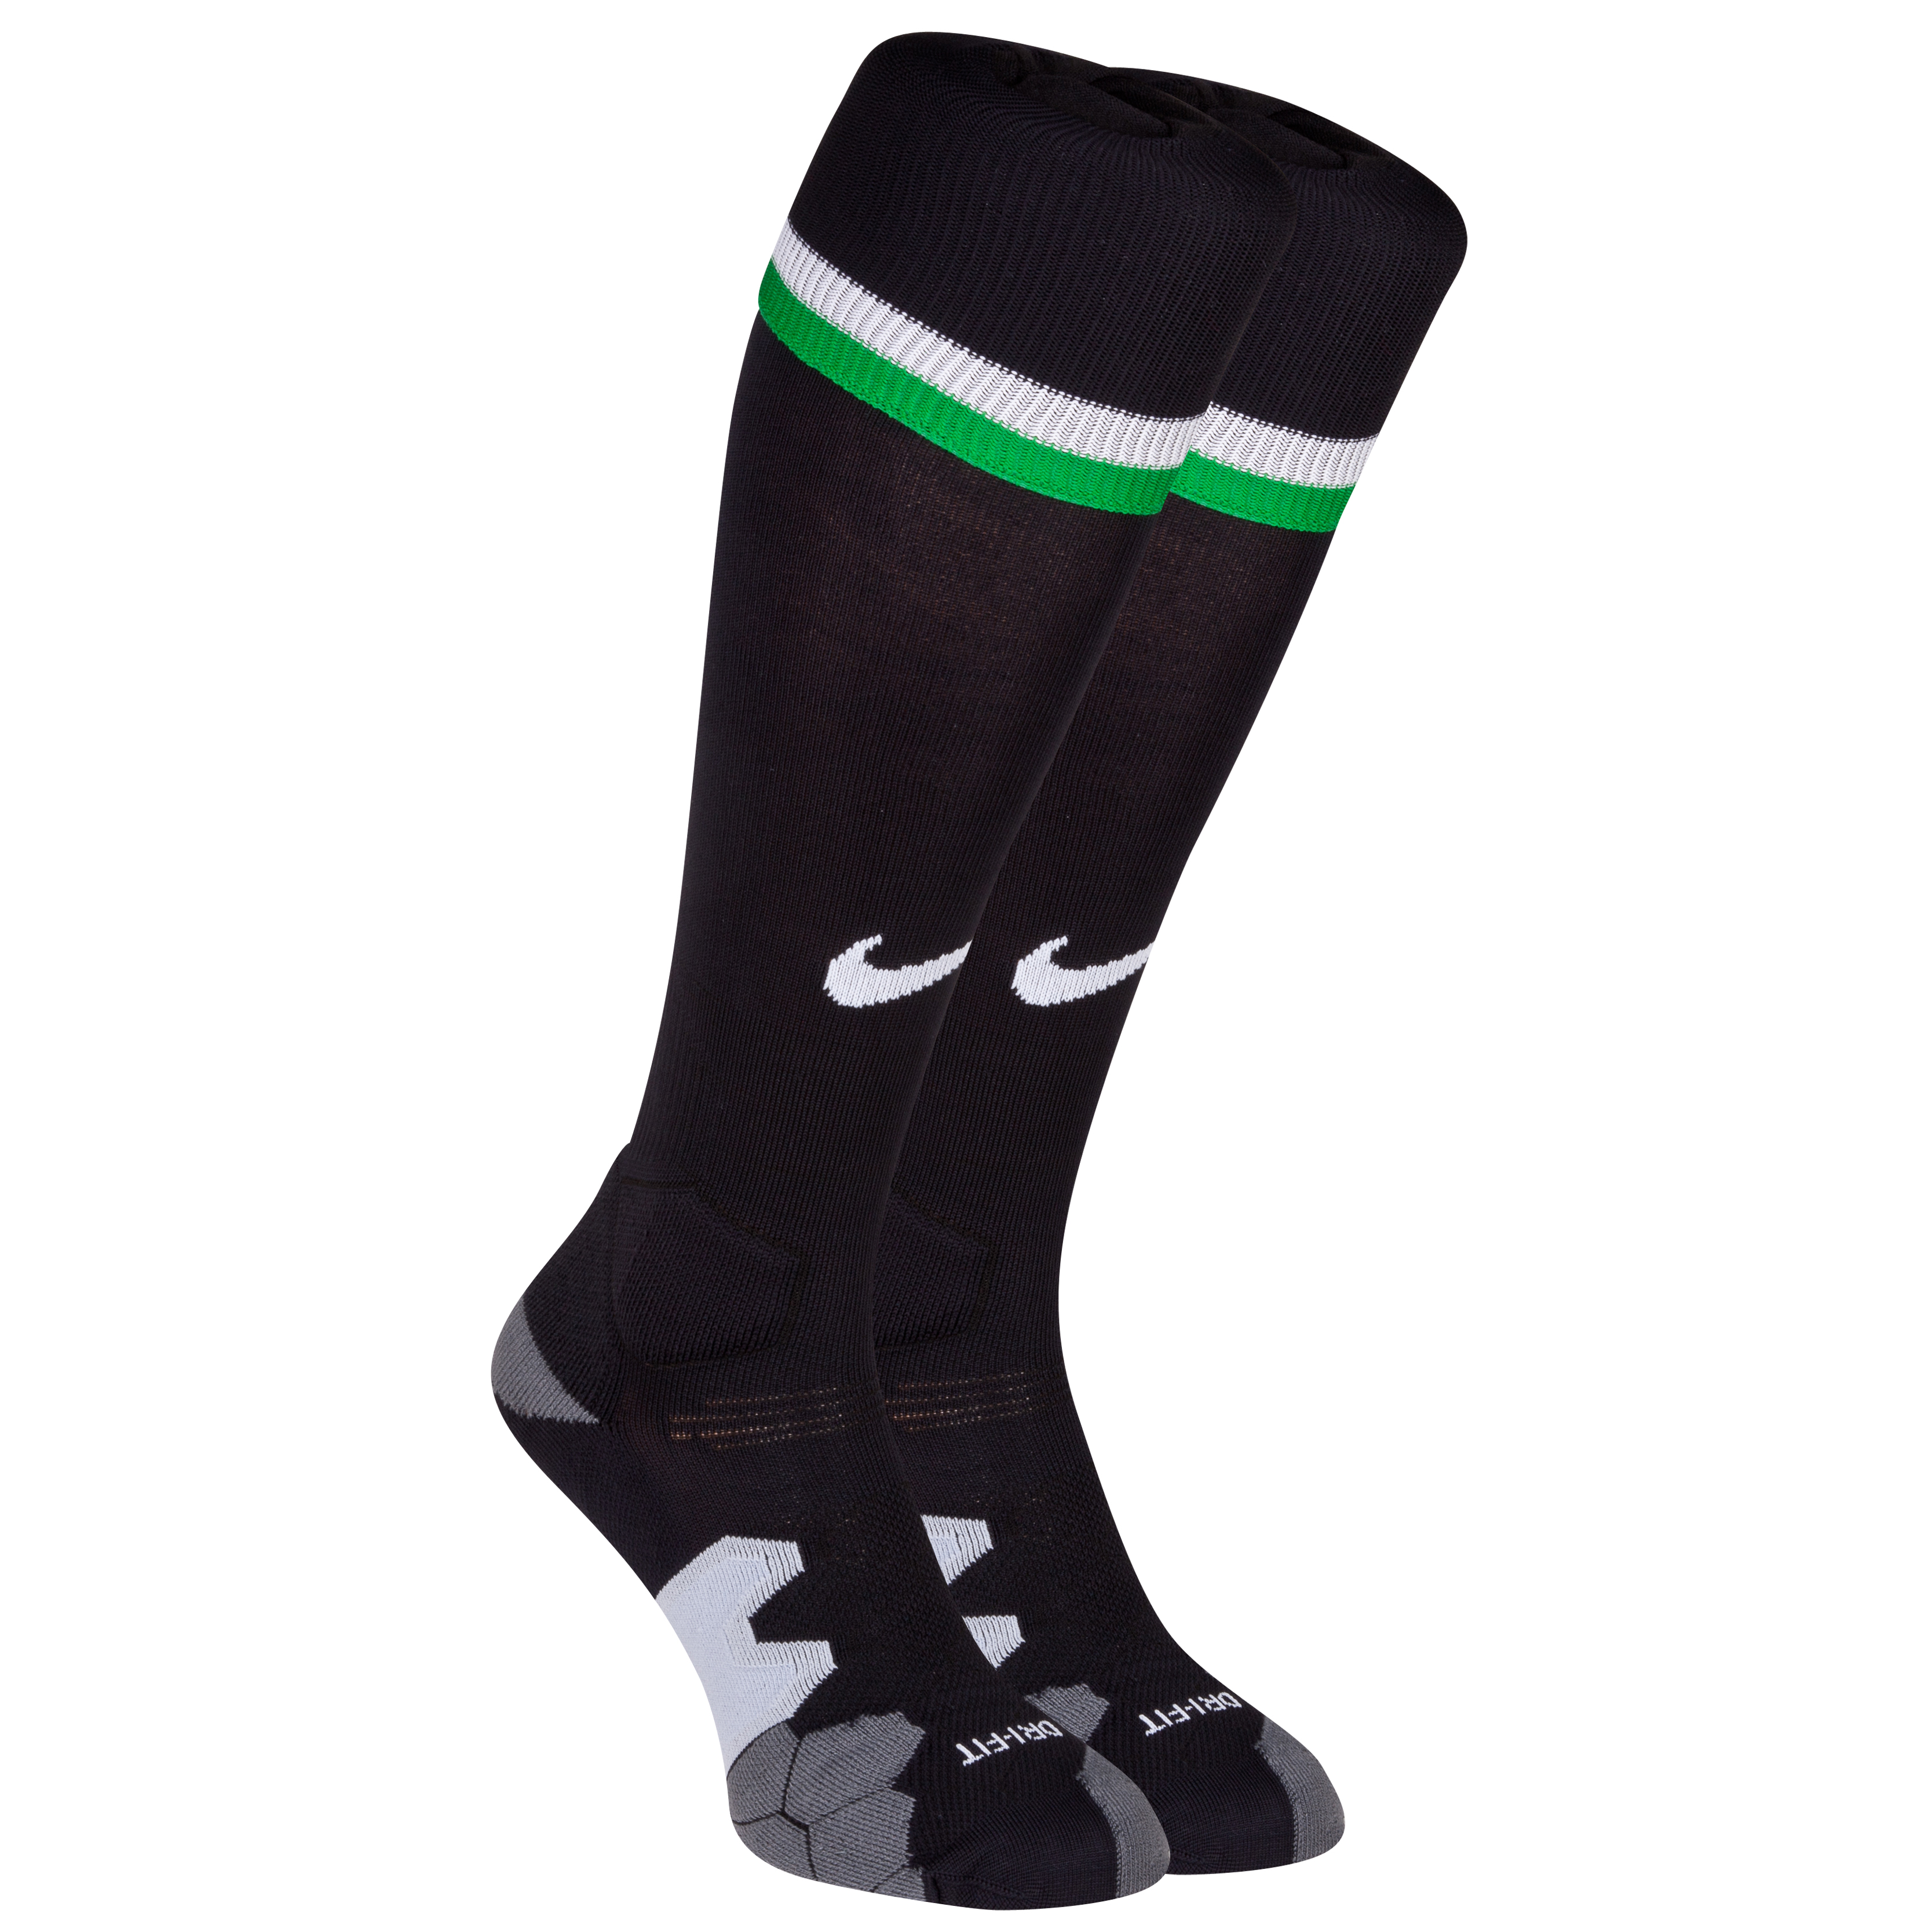 Celtic Home Socks 2012/13